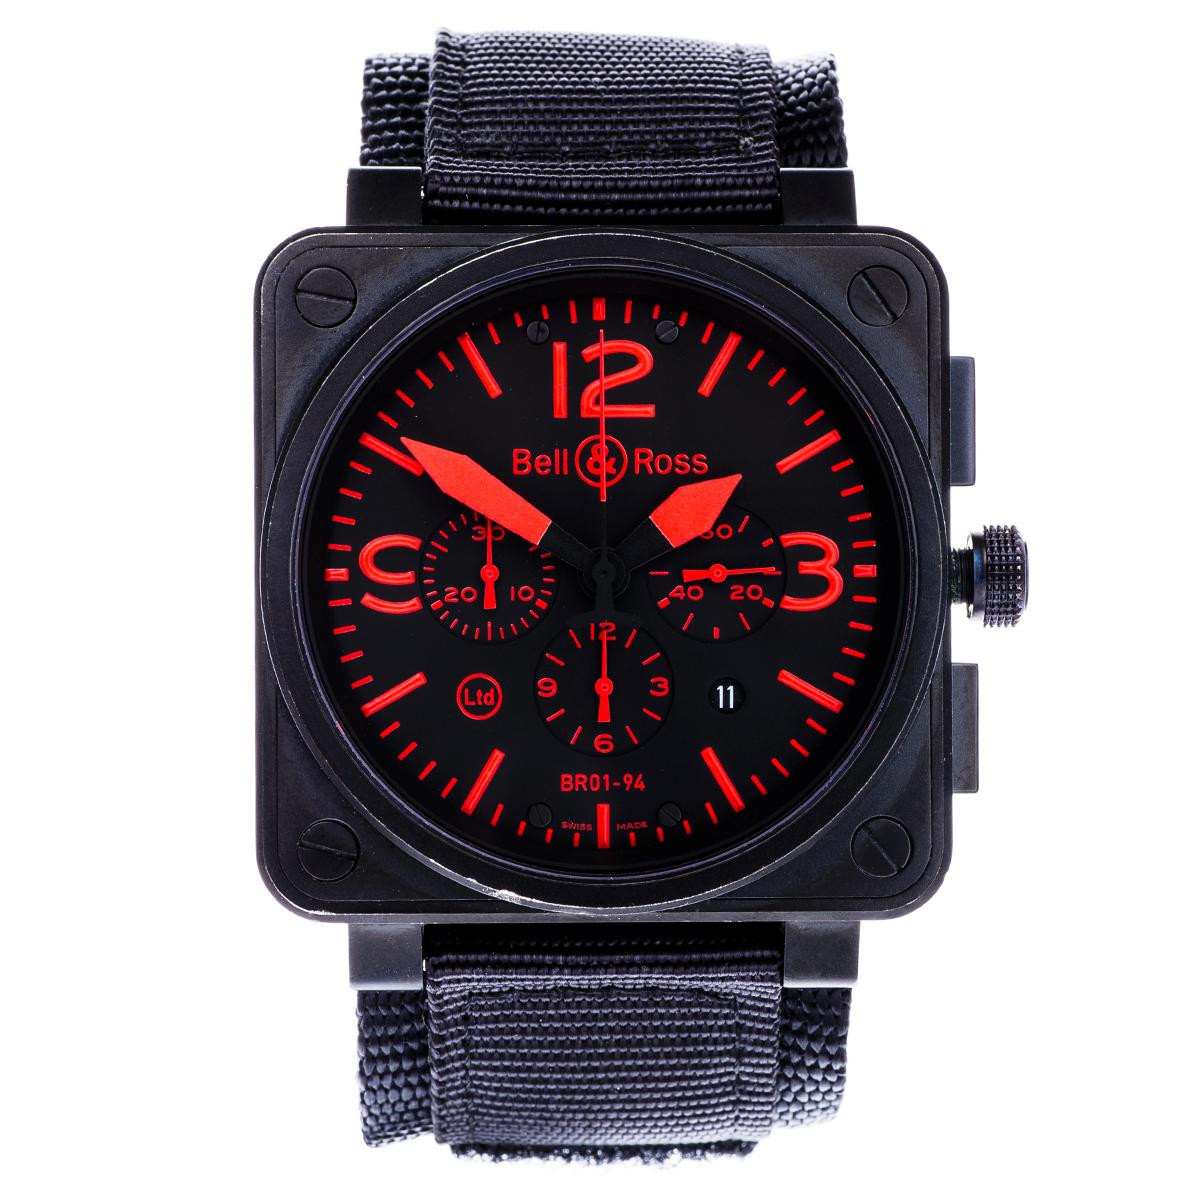 Preowned Bell & Ross Limited Edition BR01-94 Chronograph